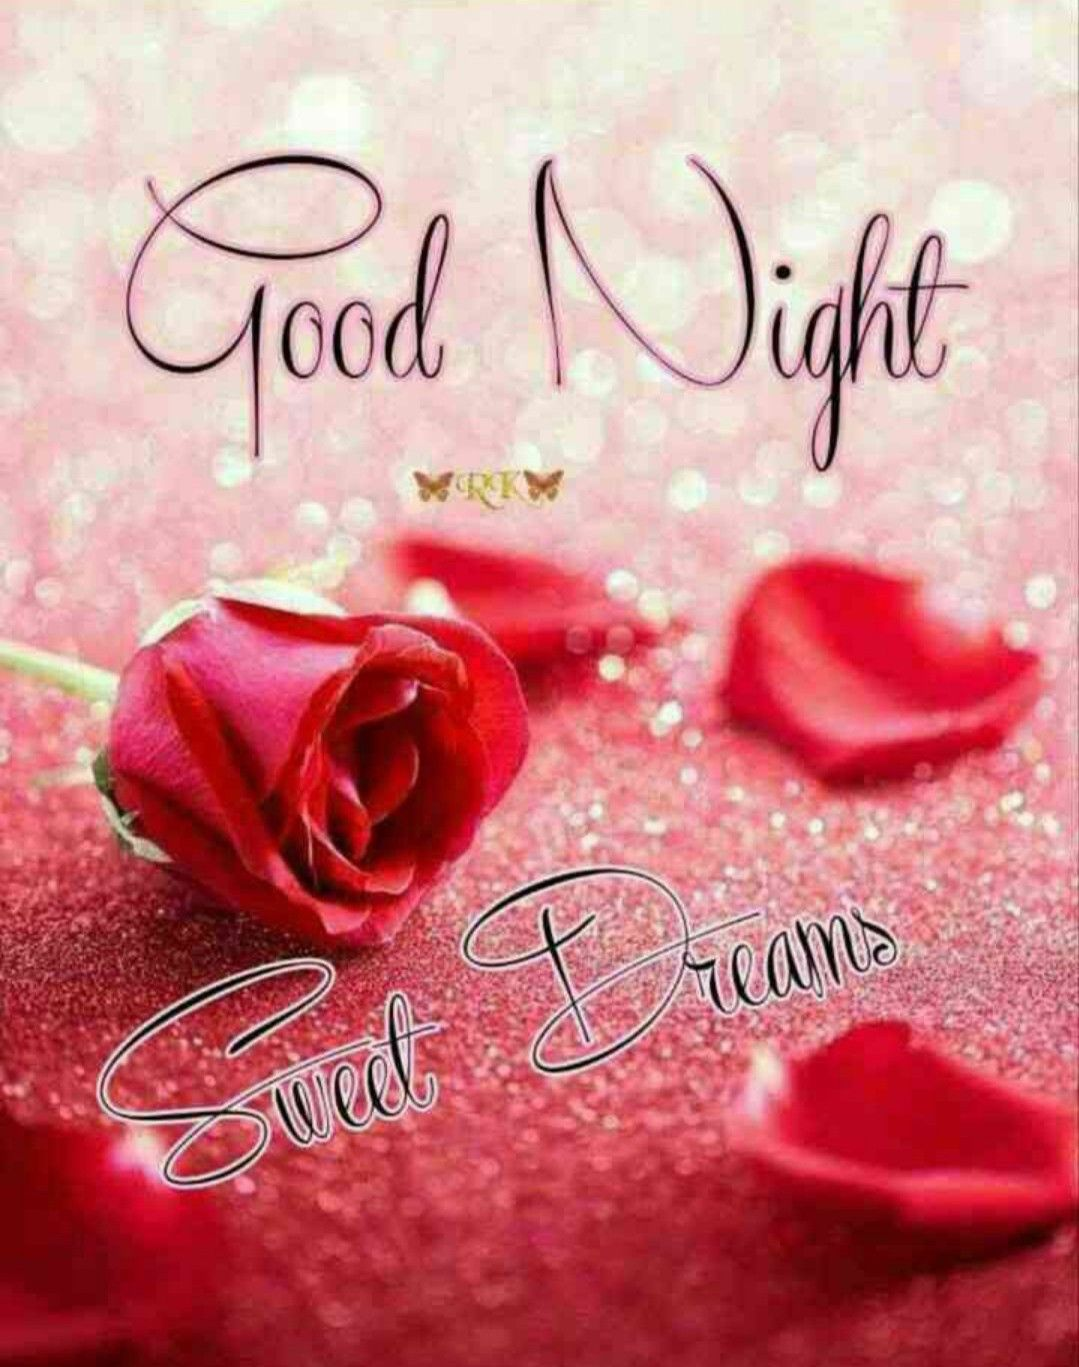 Sweetest Dreams Good Night Sleep Well Night Love Good Night Images Download 2019 238445 Hd Wallpaper Backgrounds Download